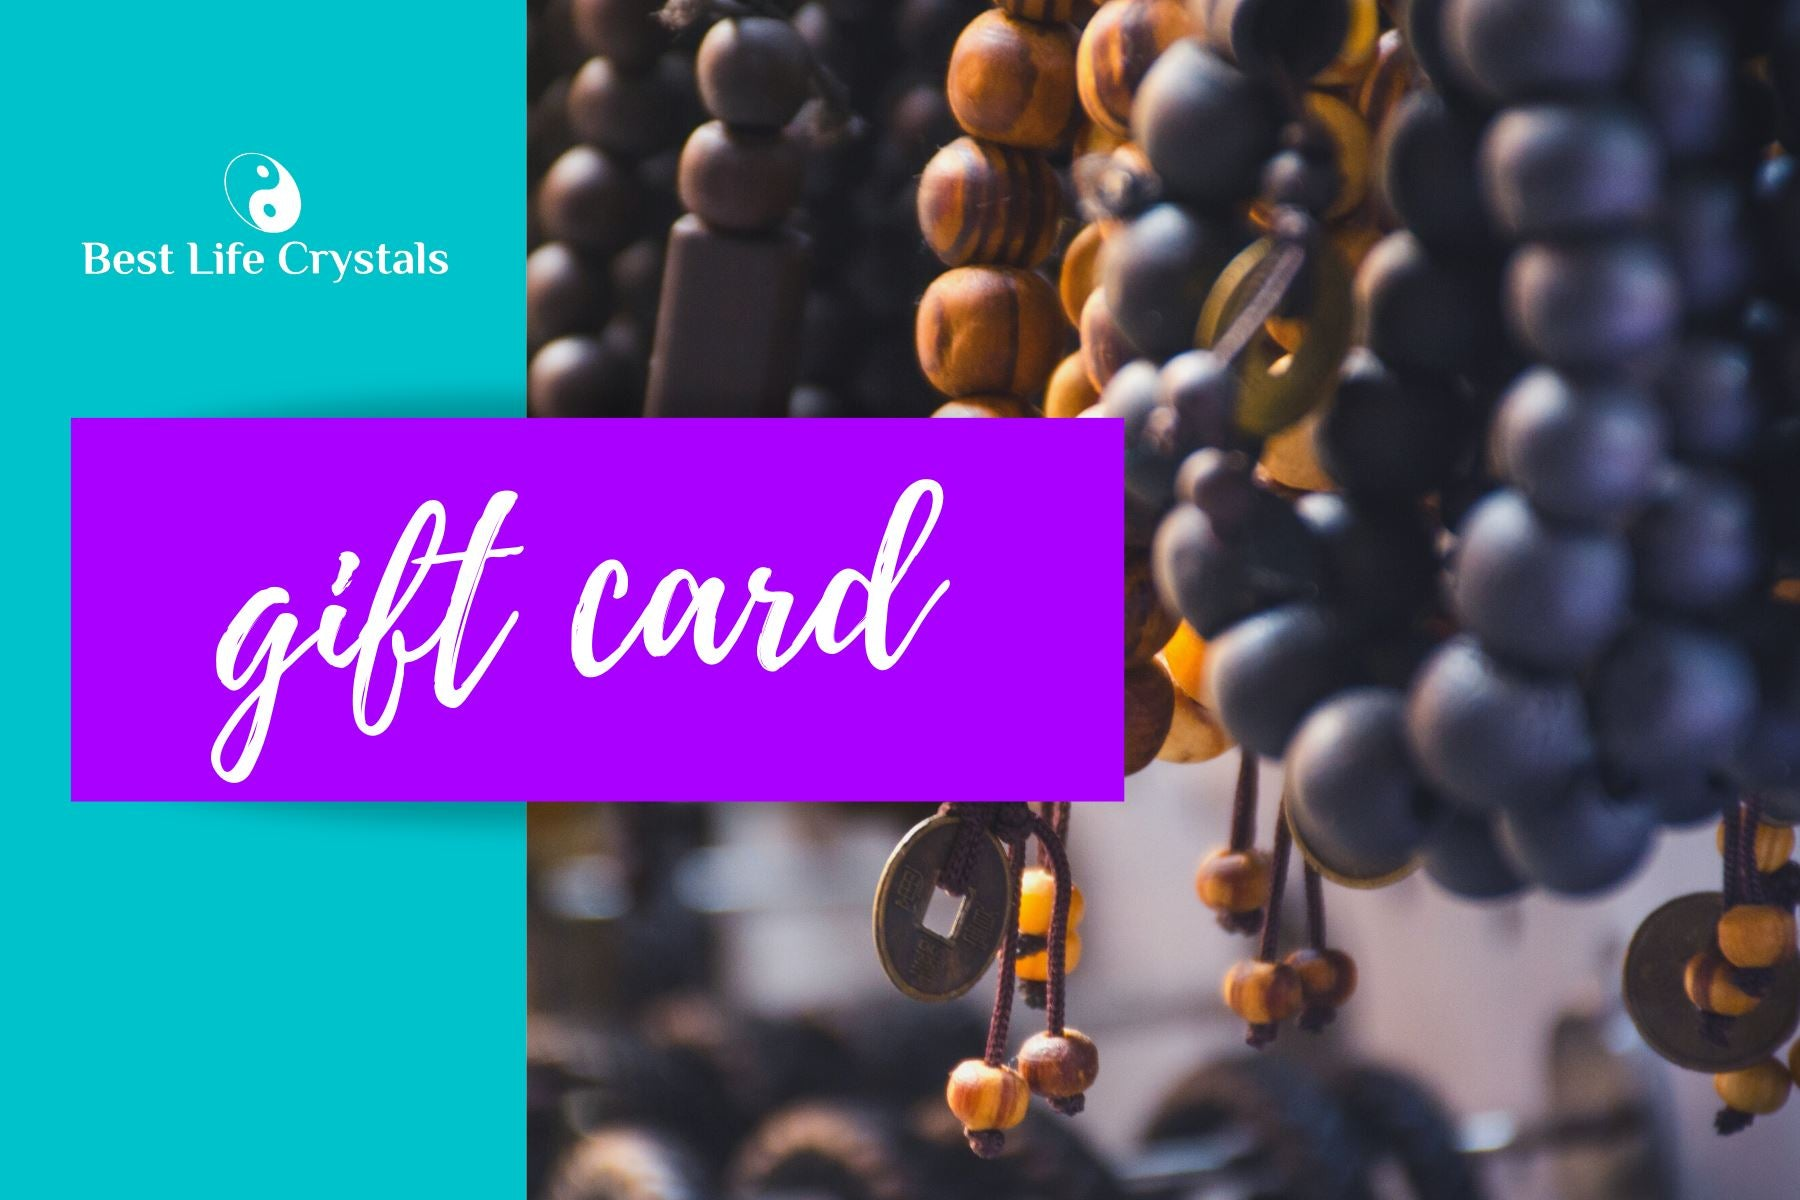 Best Life Crystals Gift Card $50 - Best Life Crystals